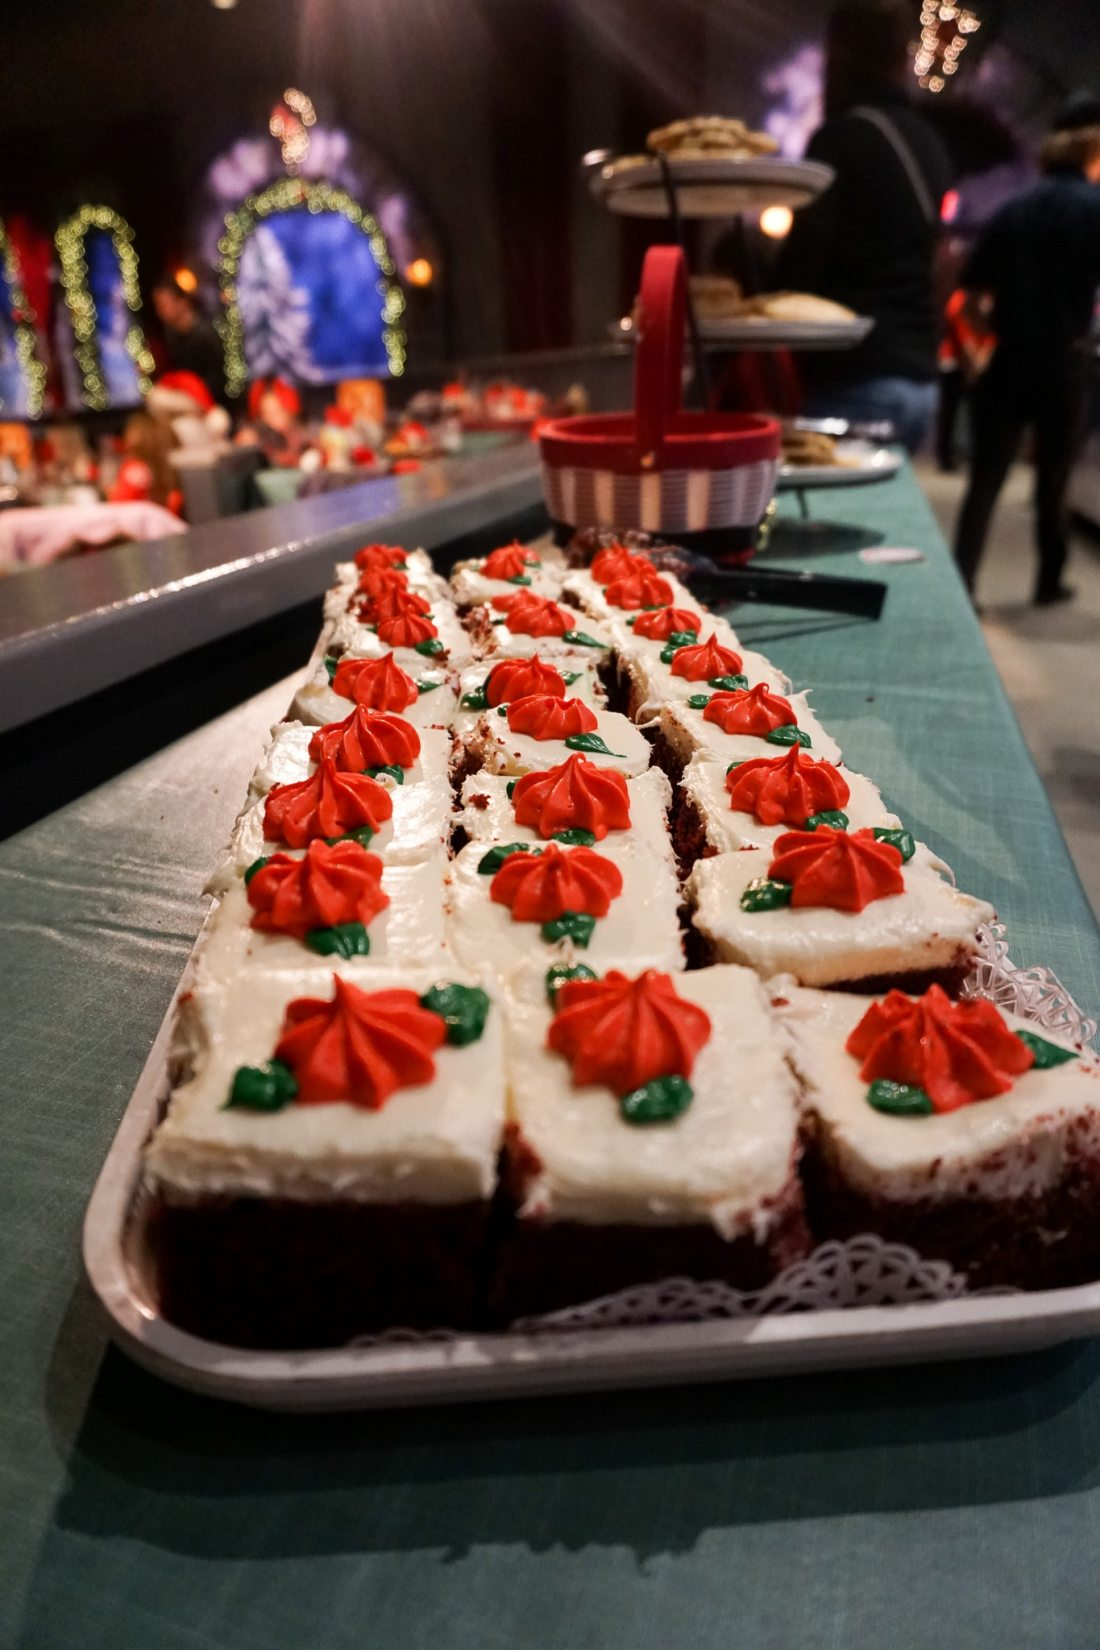 Santas Fireside Feast Red Velvet Cake. Gather around as Santa recounts a classic Christmas story while elves prepare a scrumptious all-you-care-to-eat meal and Mrs. Claus dazzles the dining room with holiday cheer. Read more about this wonderful feast at Busch Gardens Christmas Town in Williamsburg, Virginia.